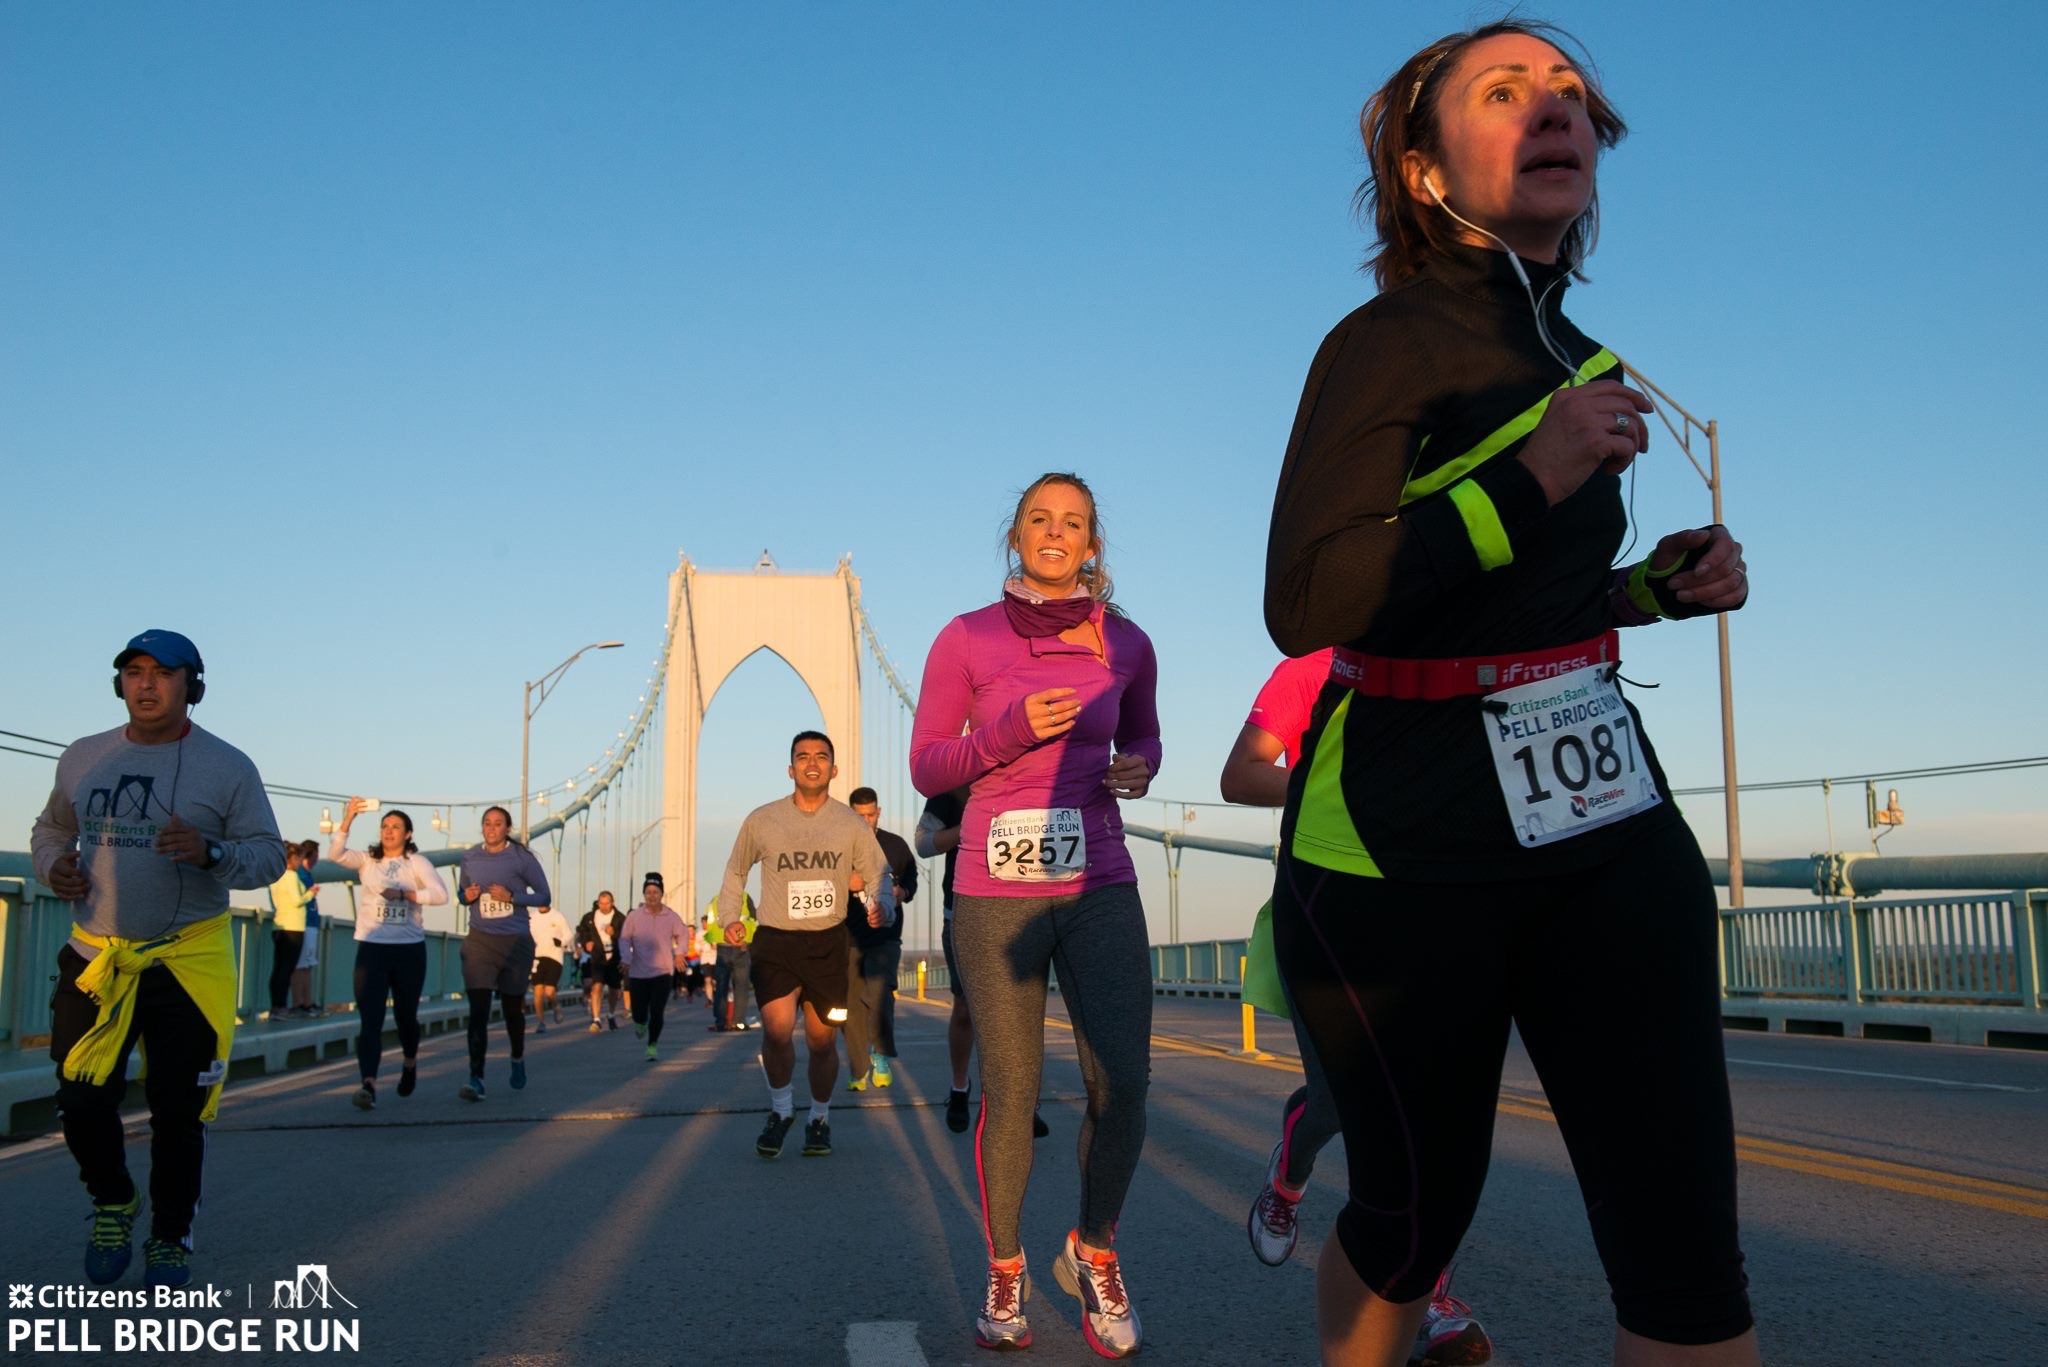 Pell Bridge Run